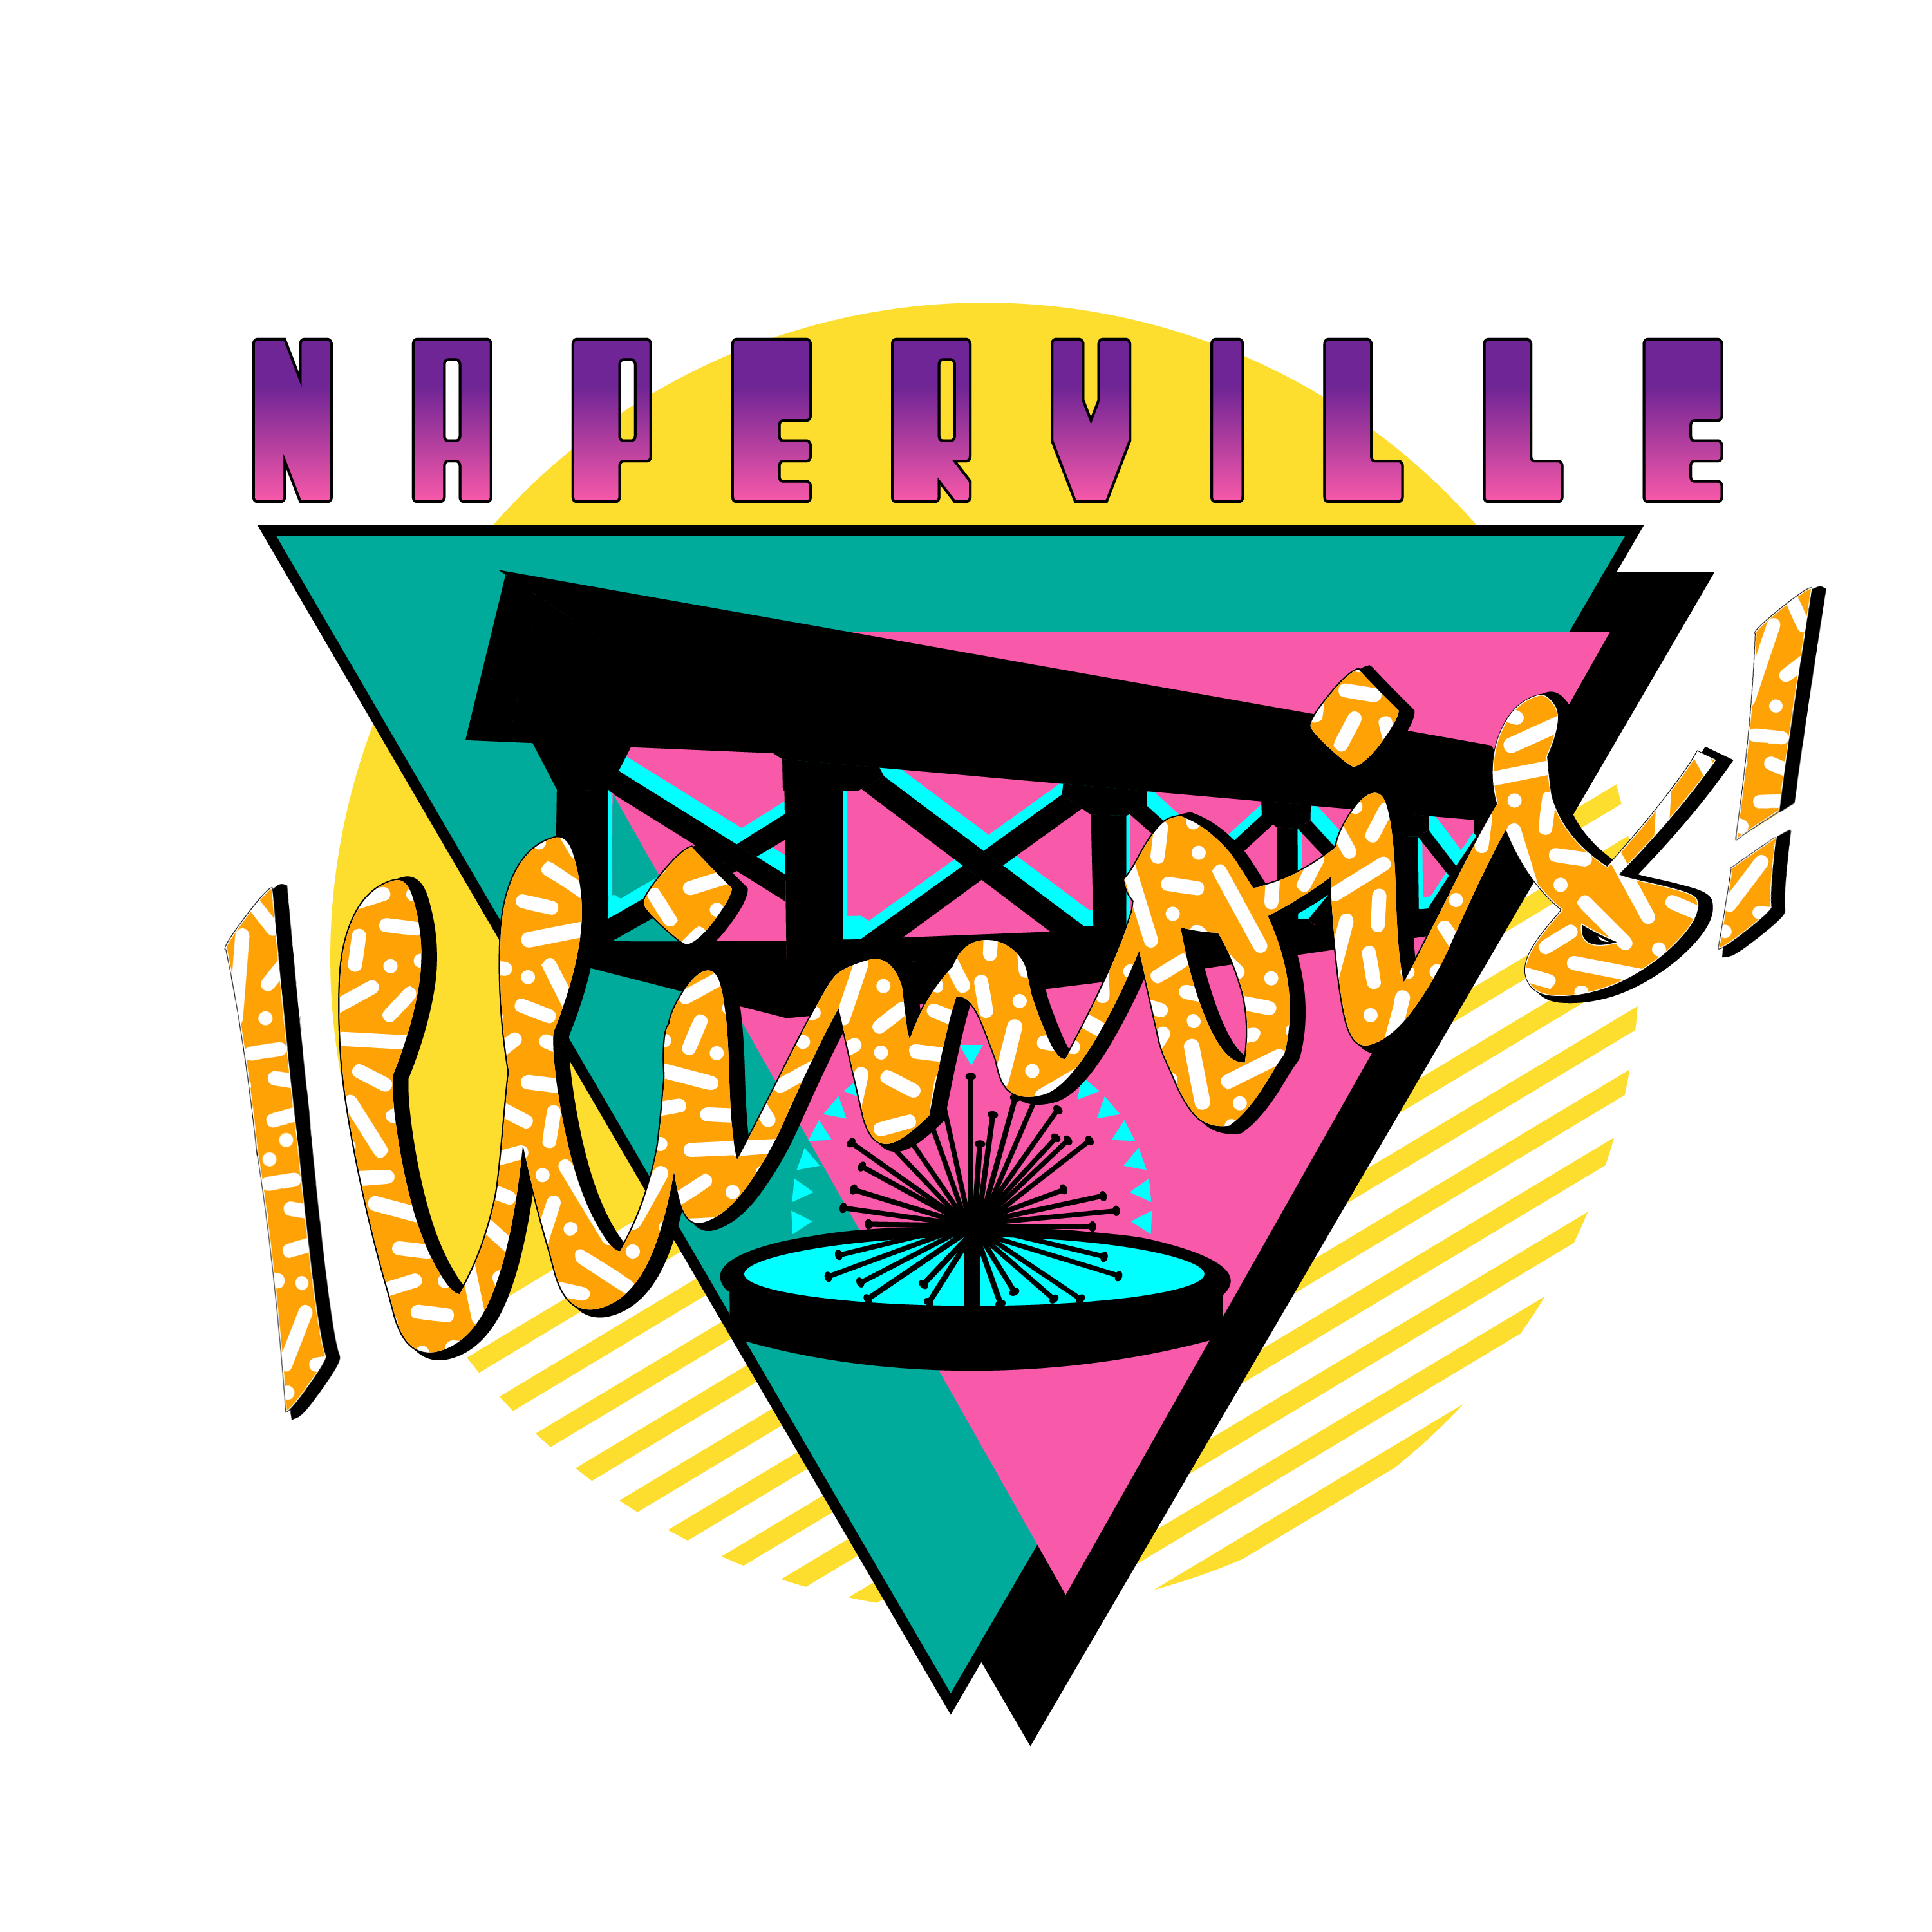 Naperville 90s Tee. Picture of a stylized Naperville, IL graphic from a Tee shirt.